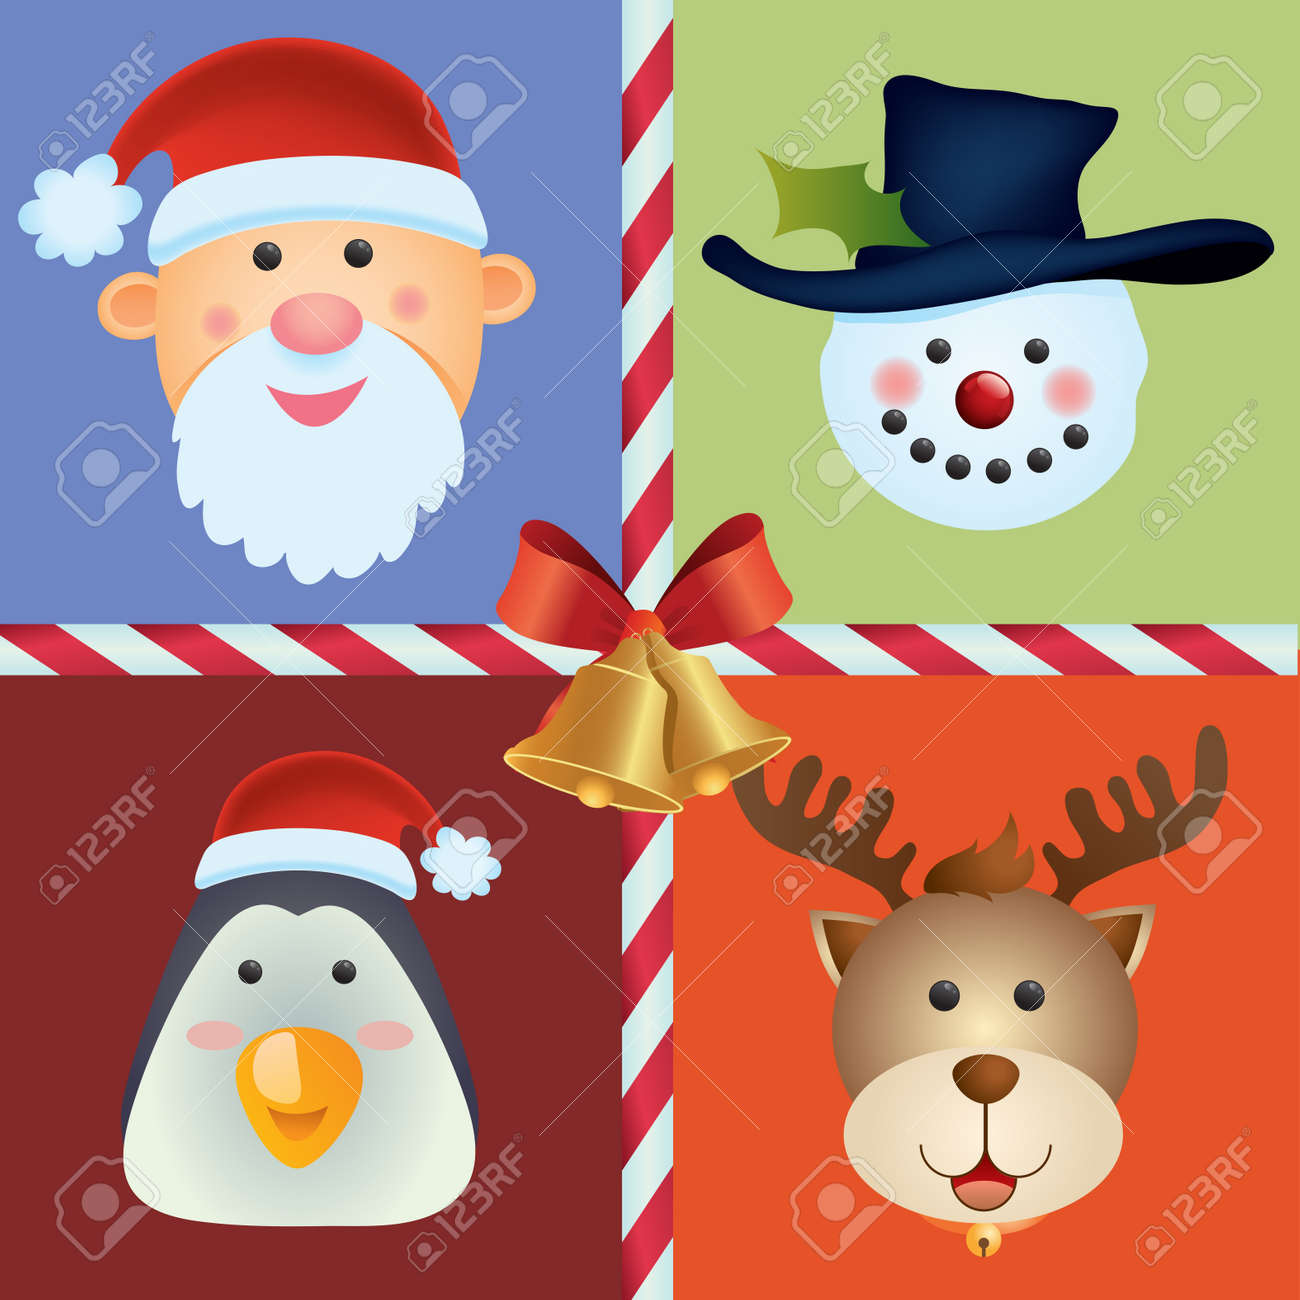 Christmas Icon Set Stock Vector - 11108320